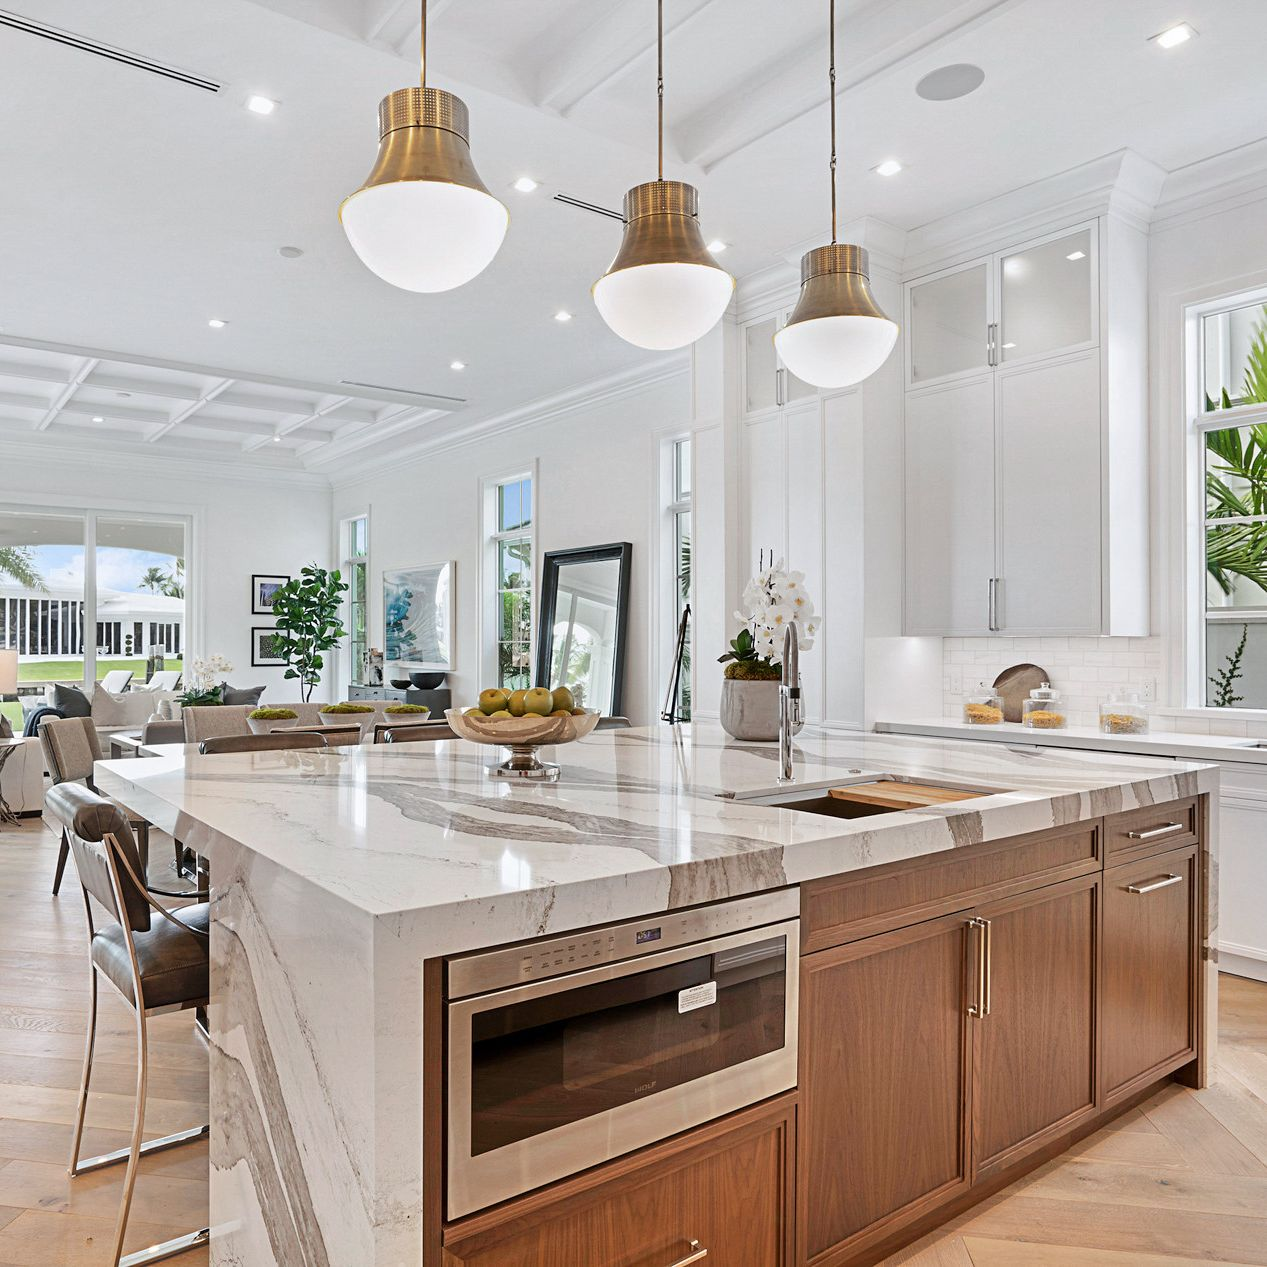 Cambria Skara Brae in a white kitchen with wood island cabinets.